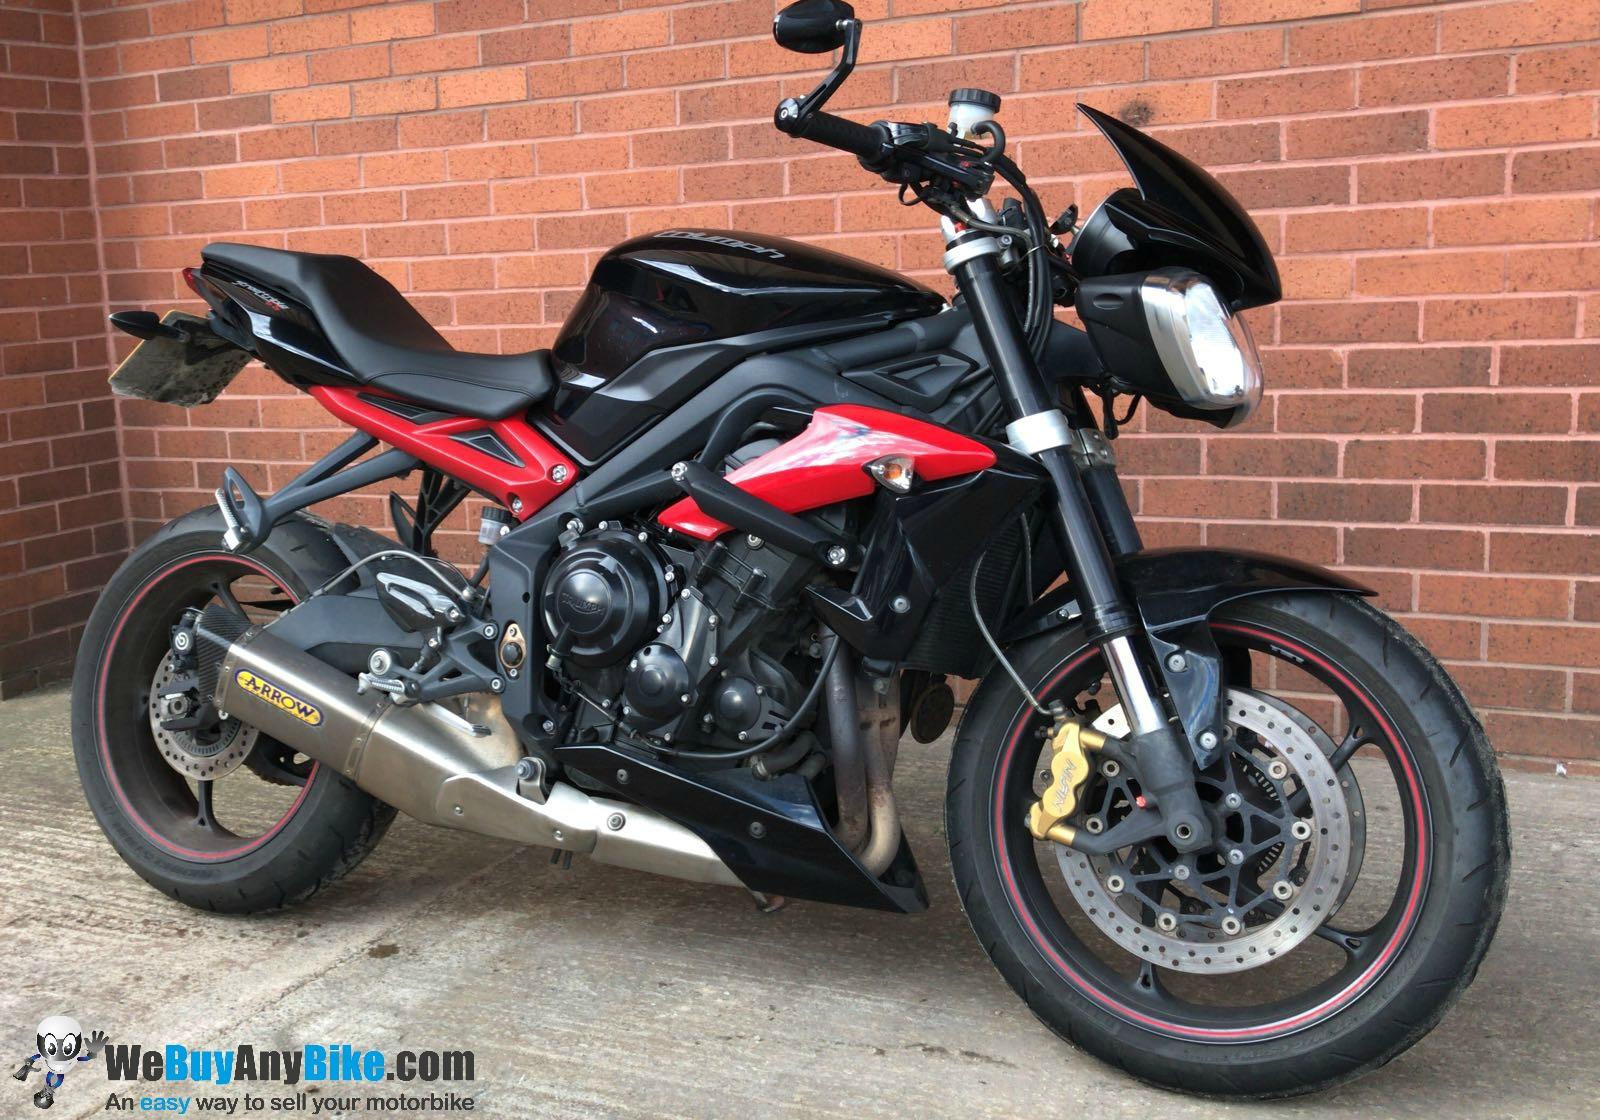 sell my bike - sell motorbike - webuyanybike - we buy any bike - bike trader